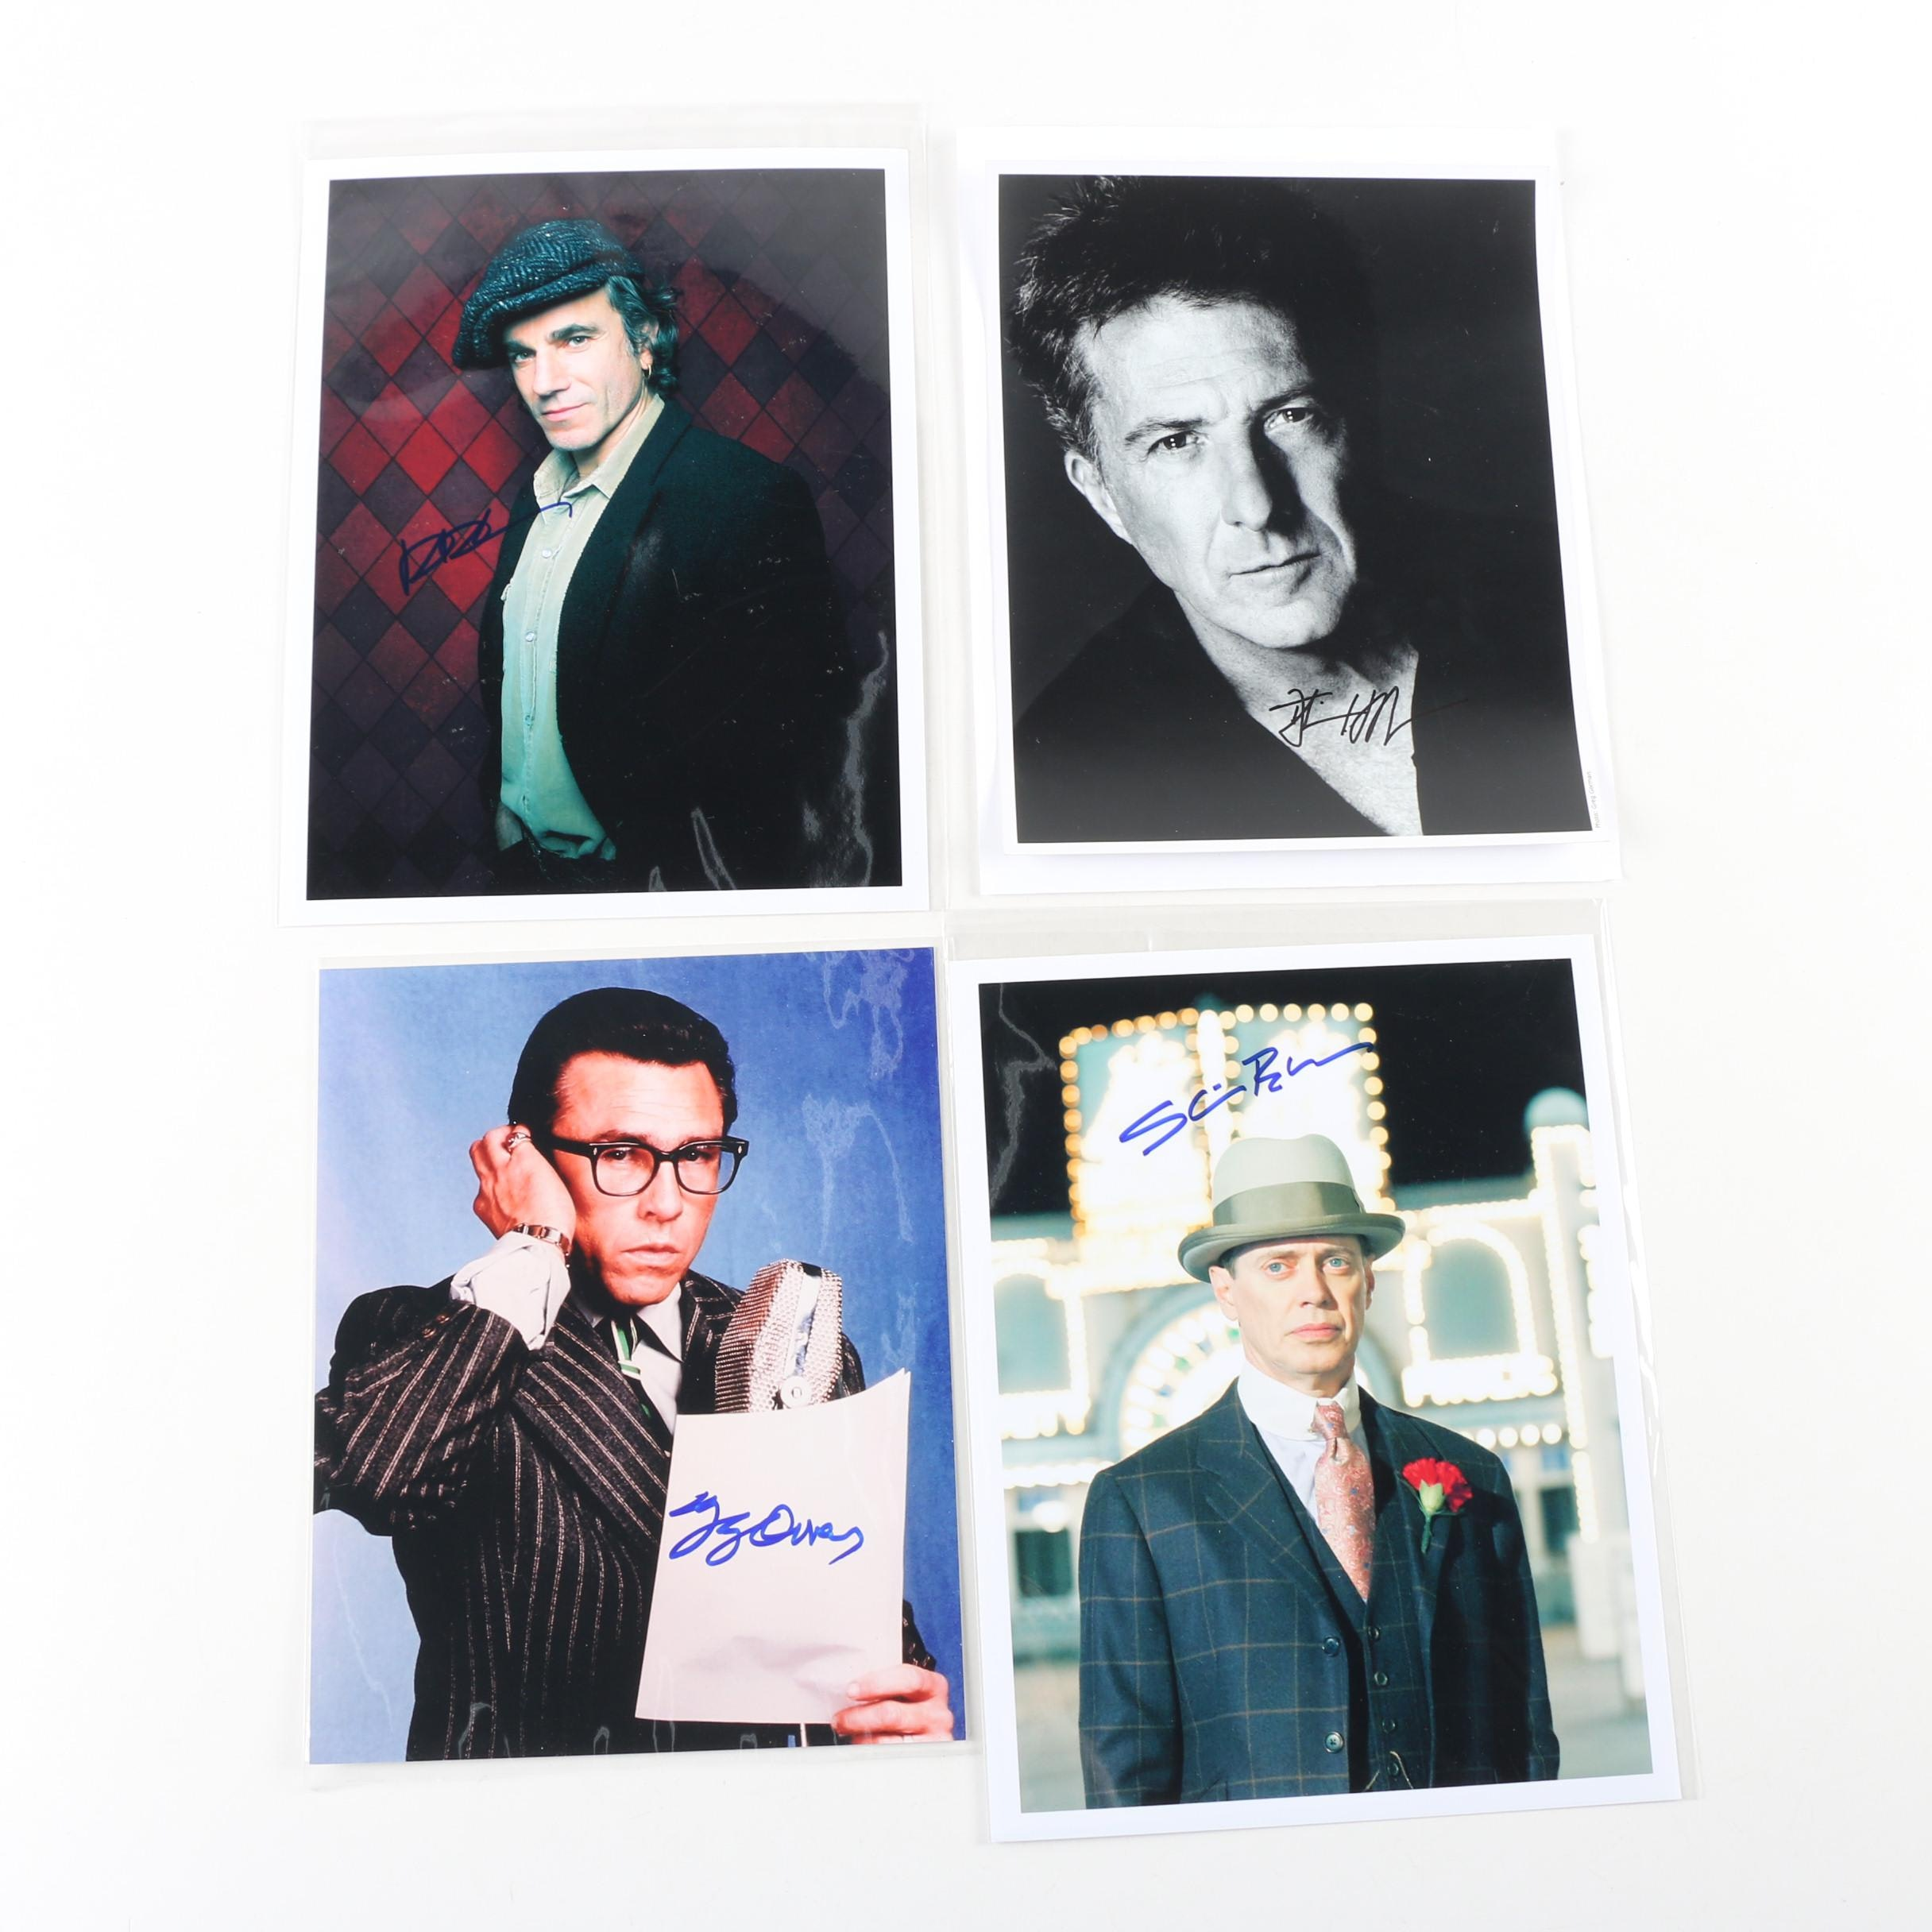 Celebrity Autographed Photos Featuring Dustin Hoffman and Daniel Day-Lewis